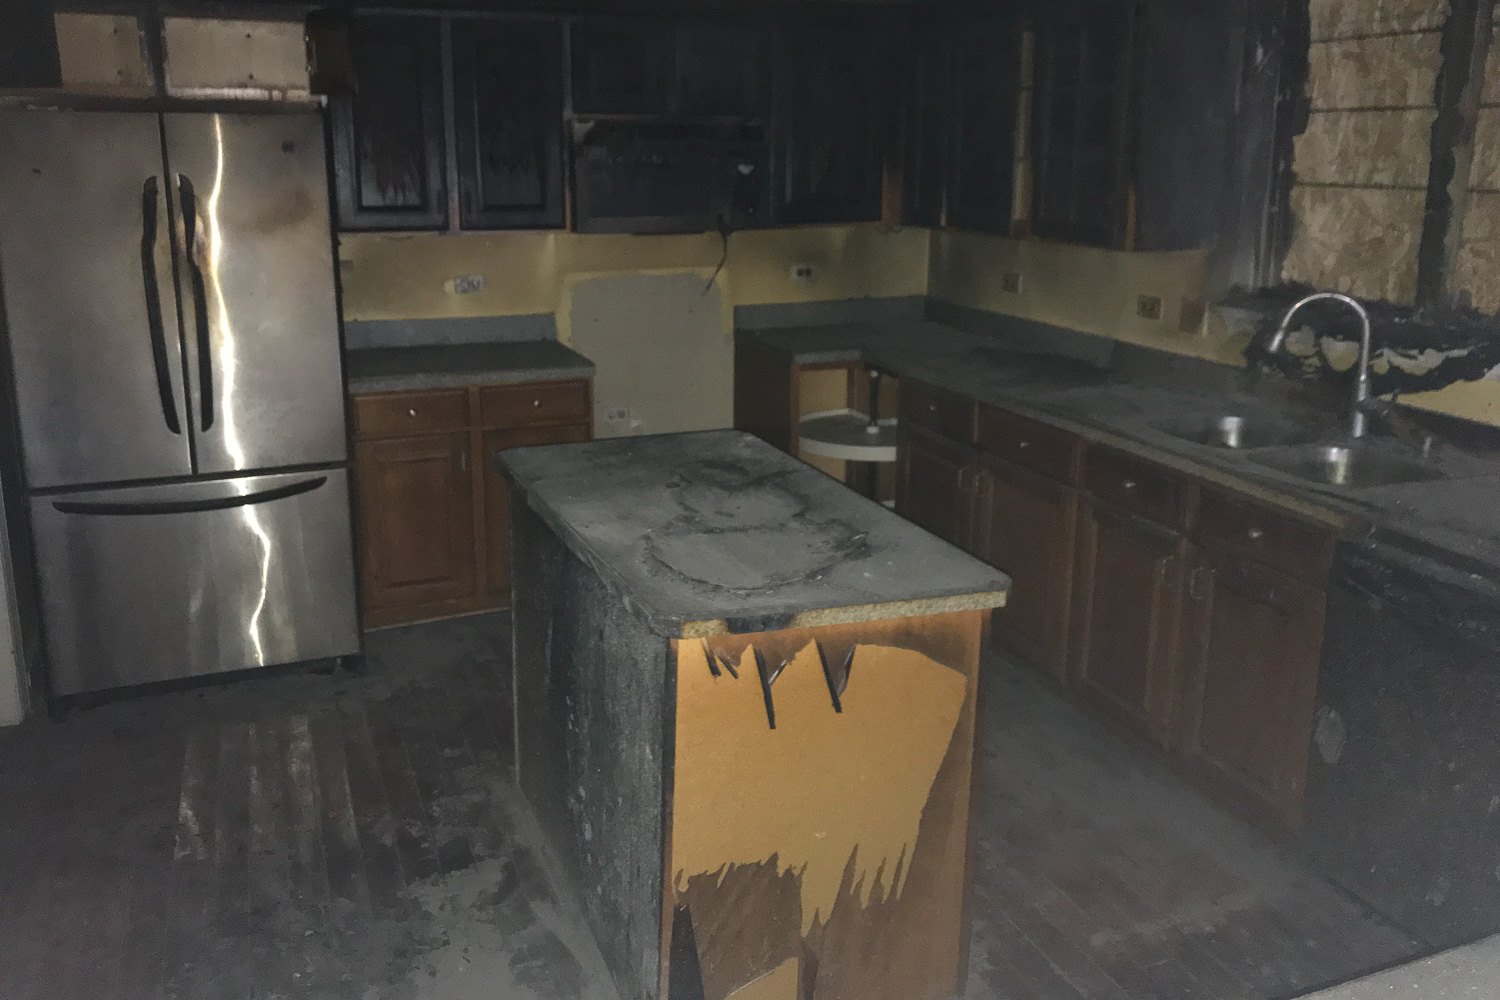 Kitchen before house fire restoration project